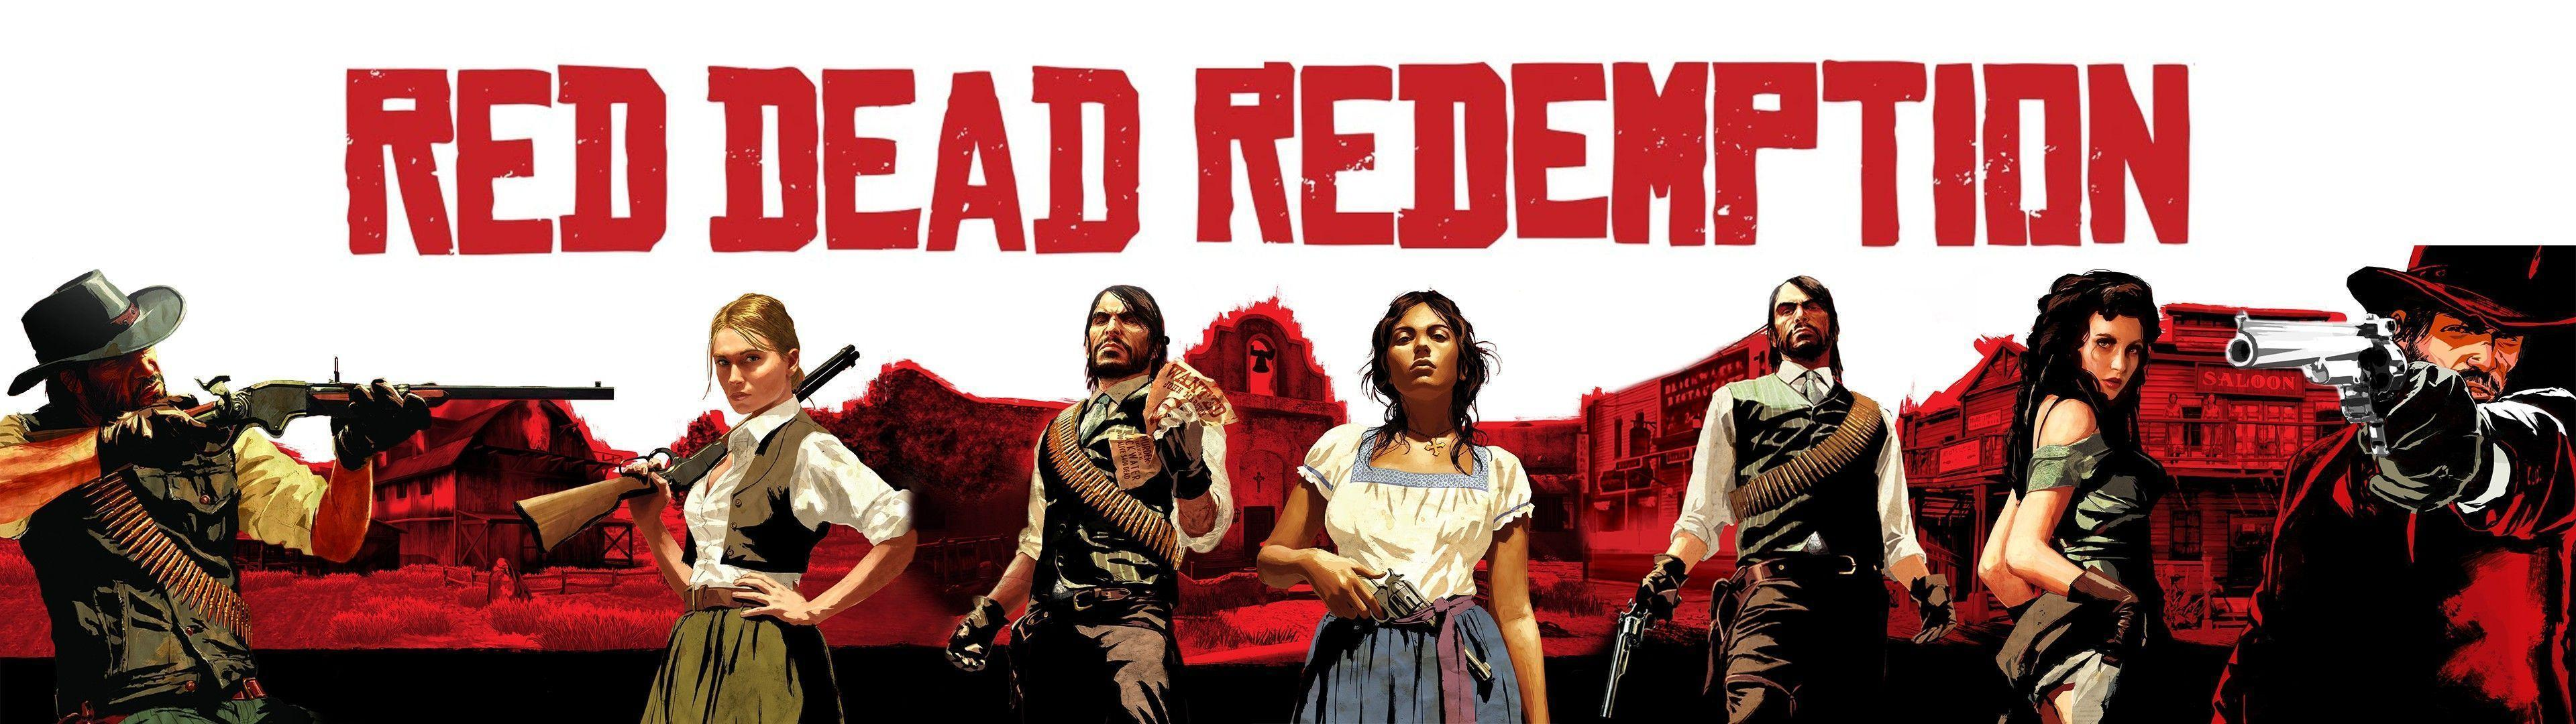 Free Download Red Dead Redemption Wallpapers Hd 3840x1080 For